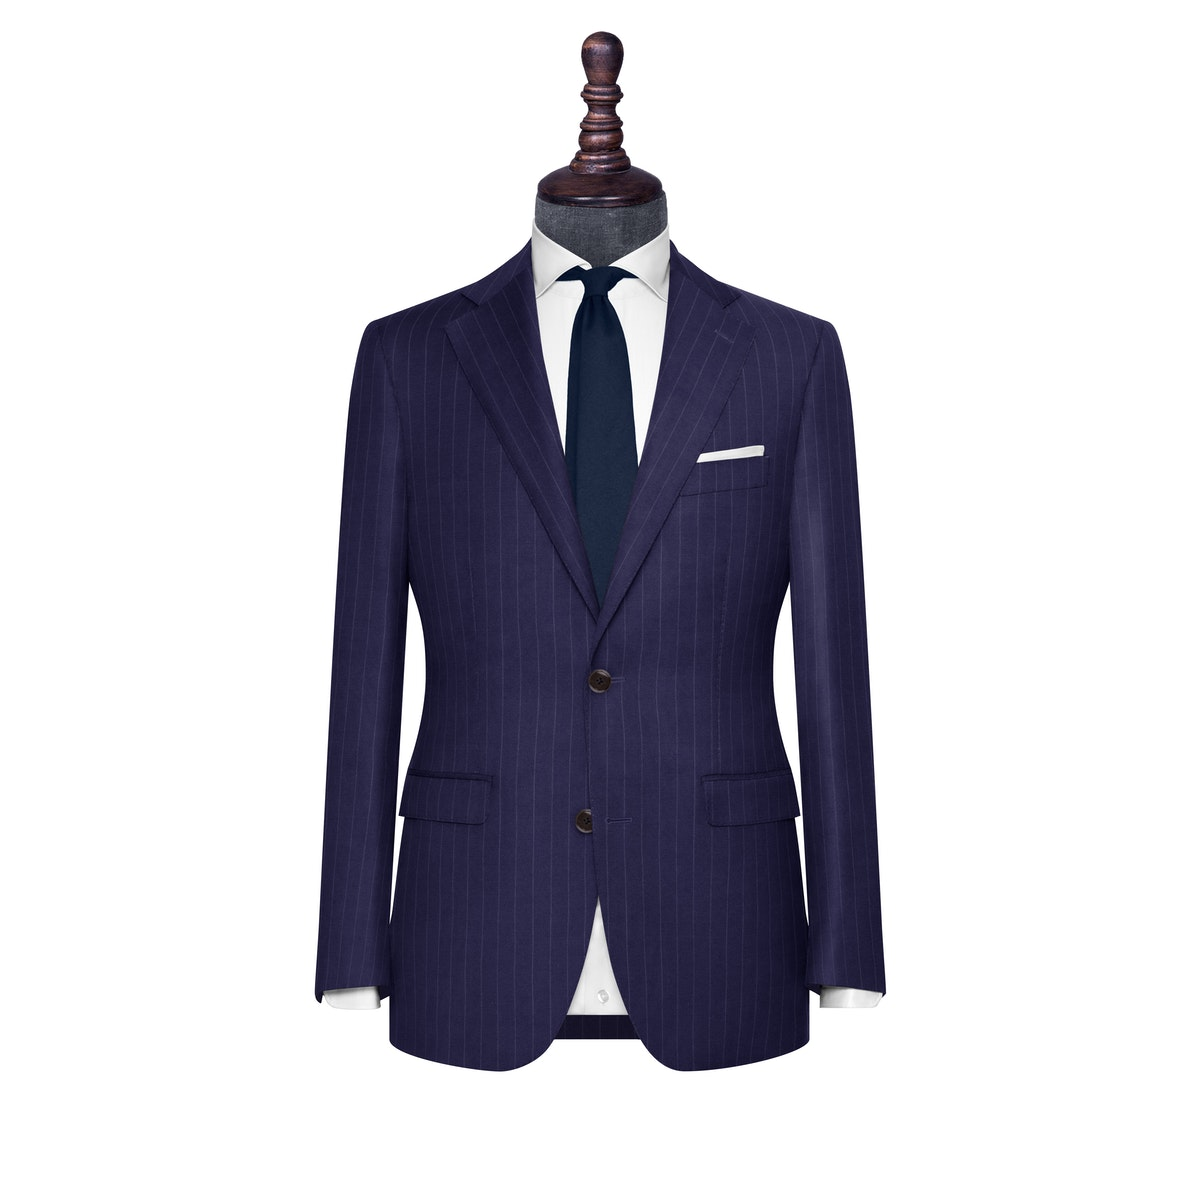 InStitchu Collection The Livorno Navy Chalk Stripe Wool Jacket